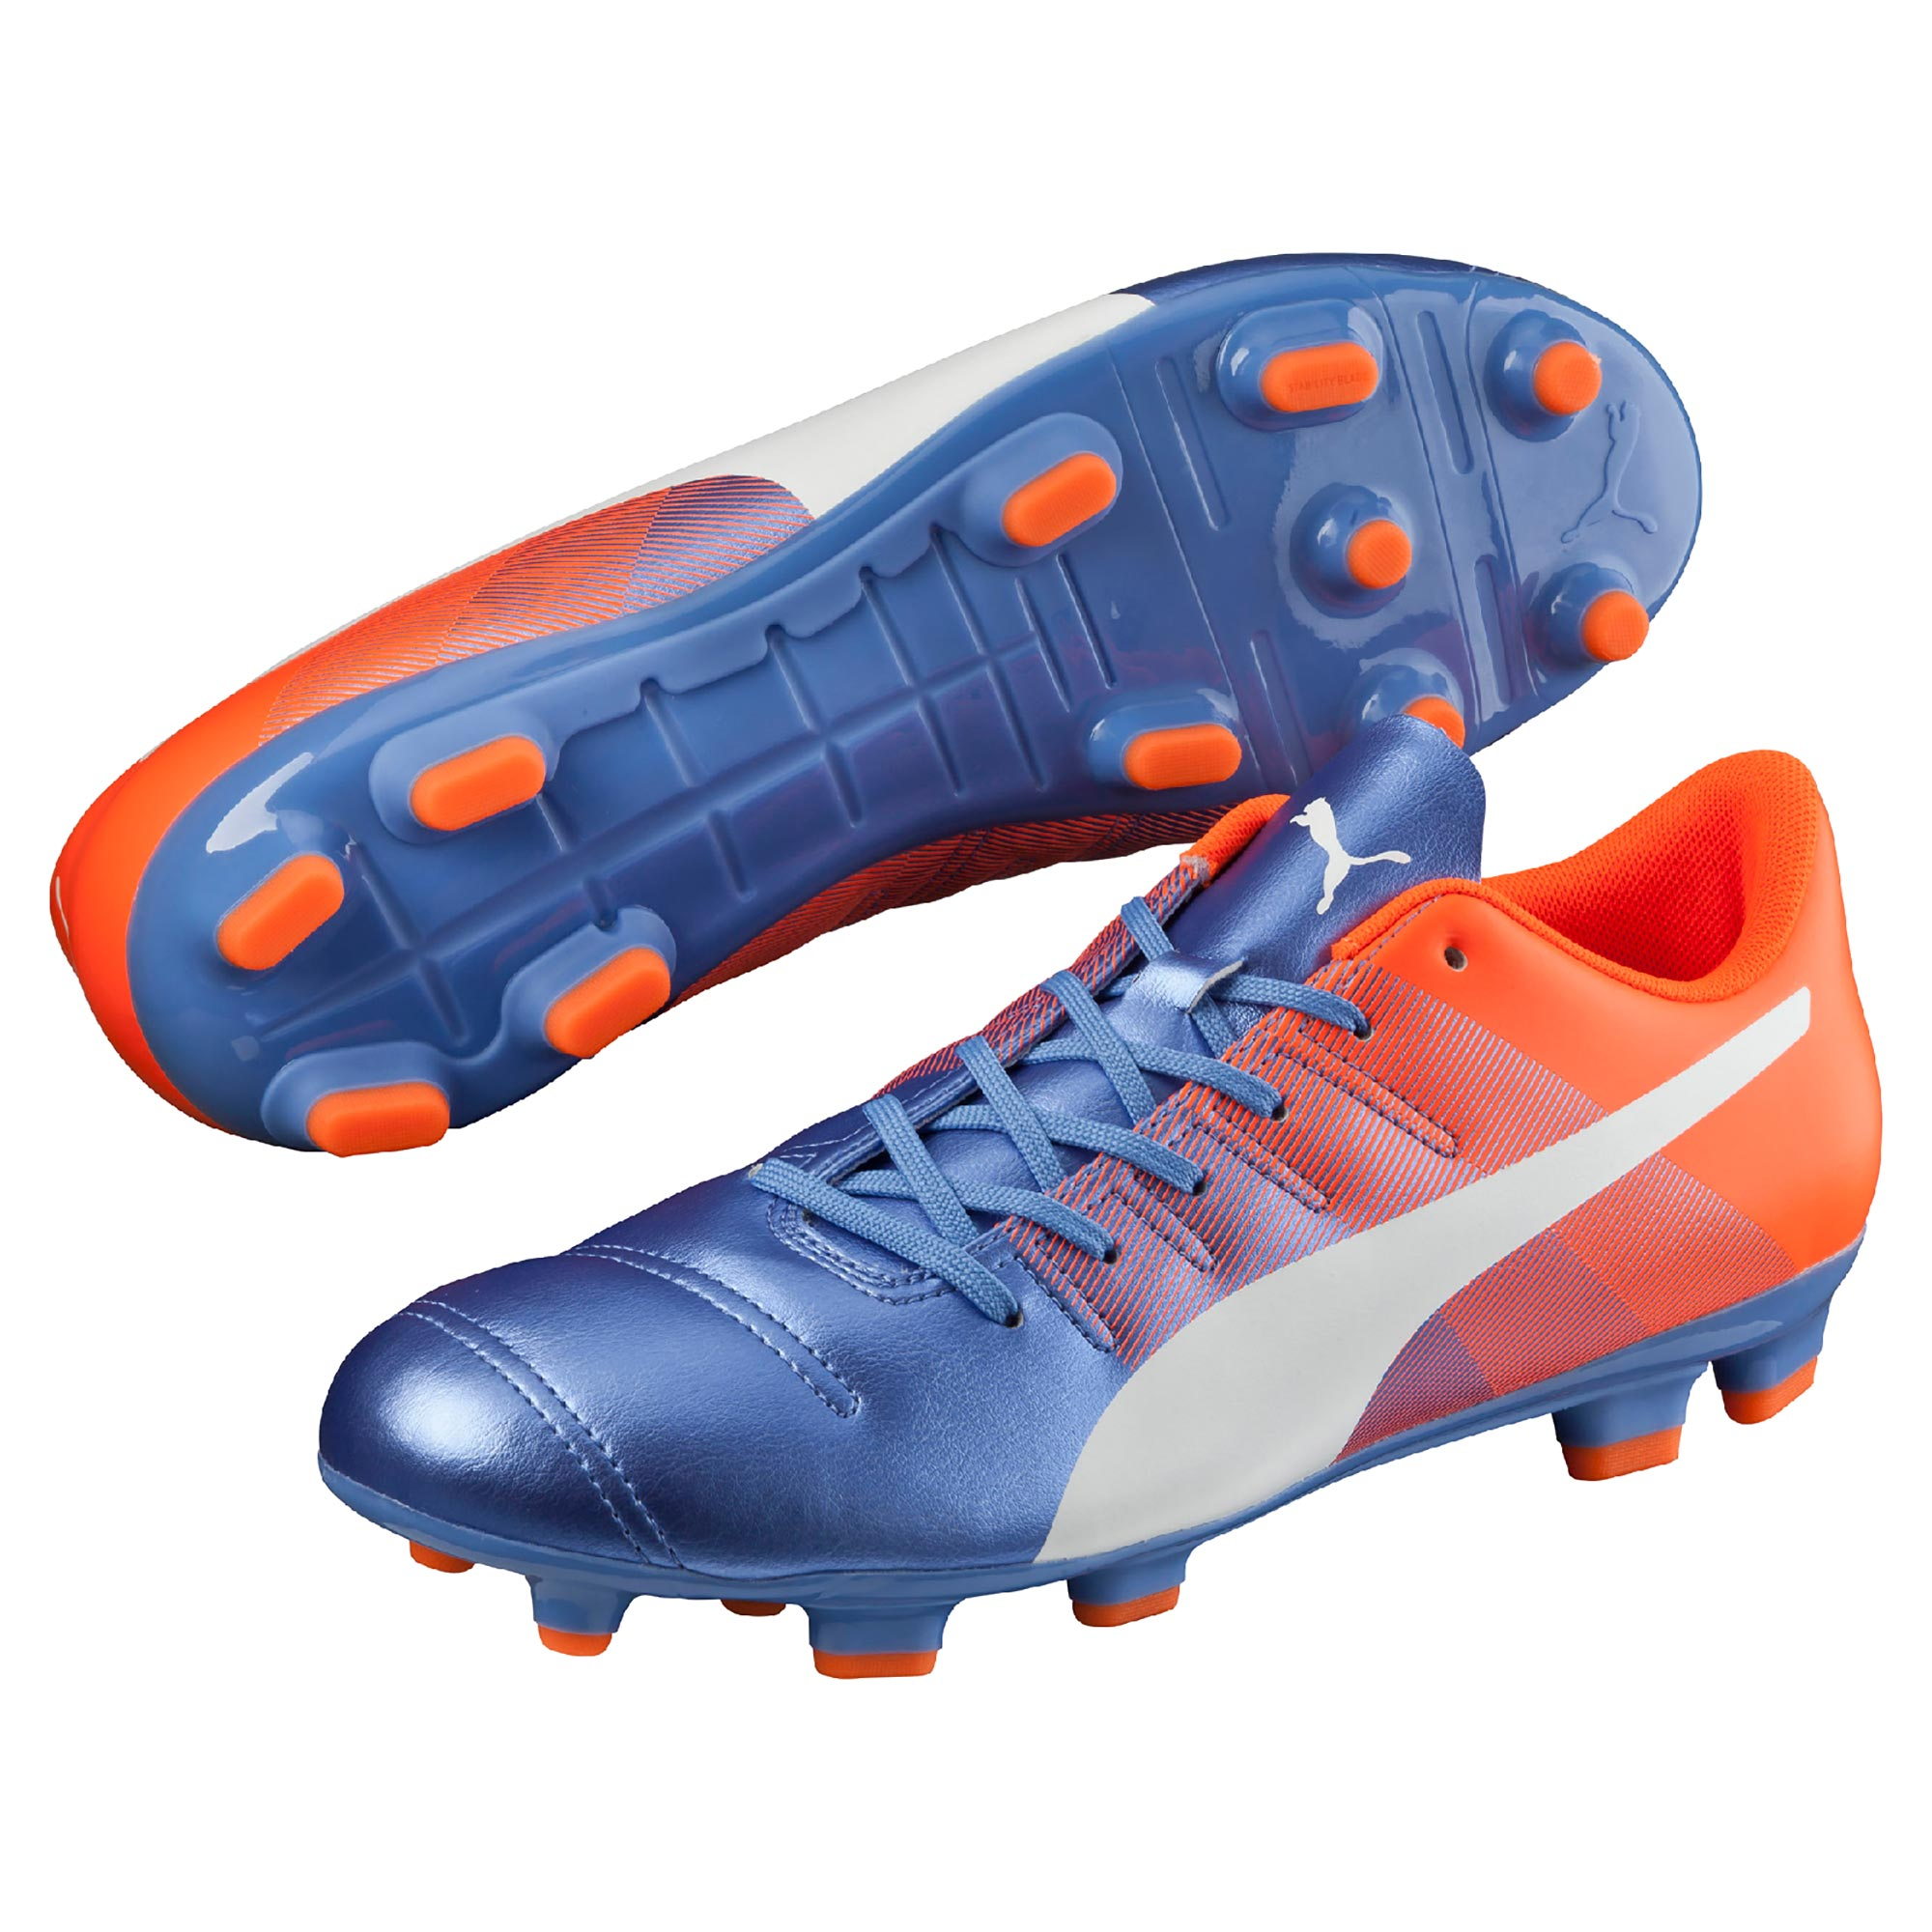 1bb6a5c0d80 Buy Puma evoPOWER Rugby Boots - compare prices